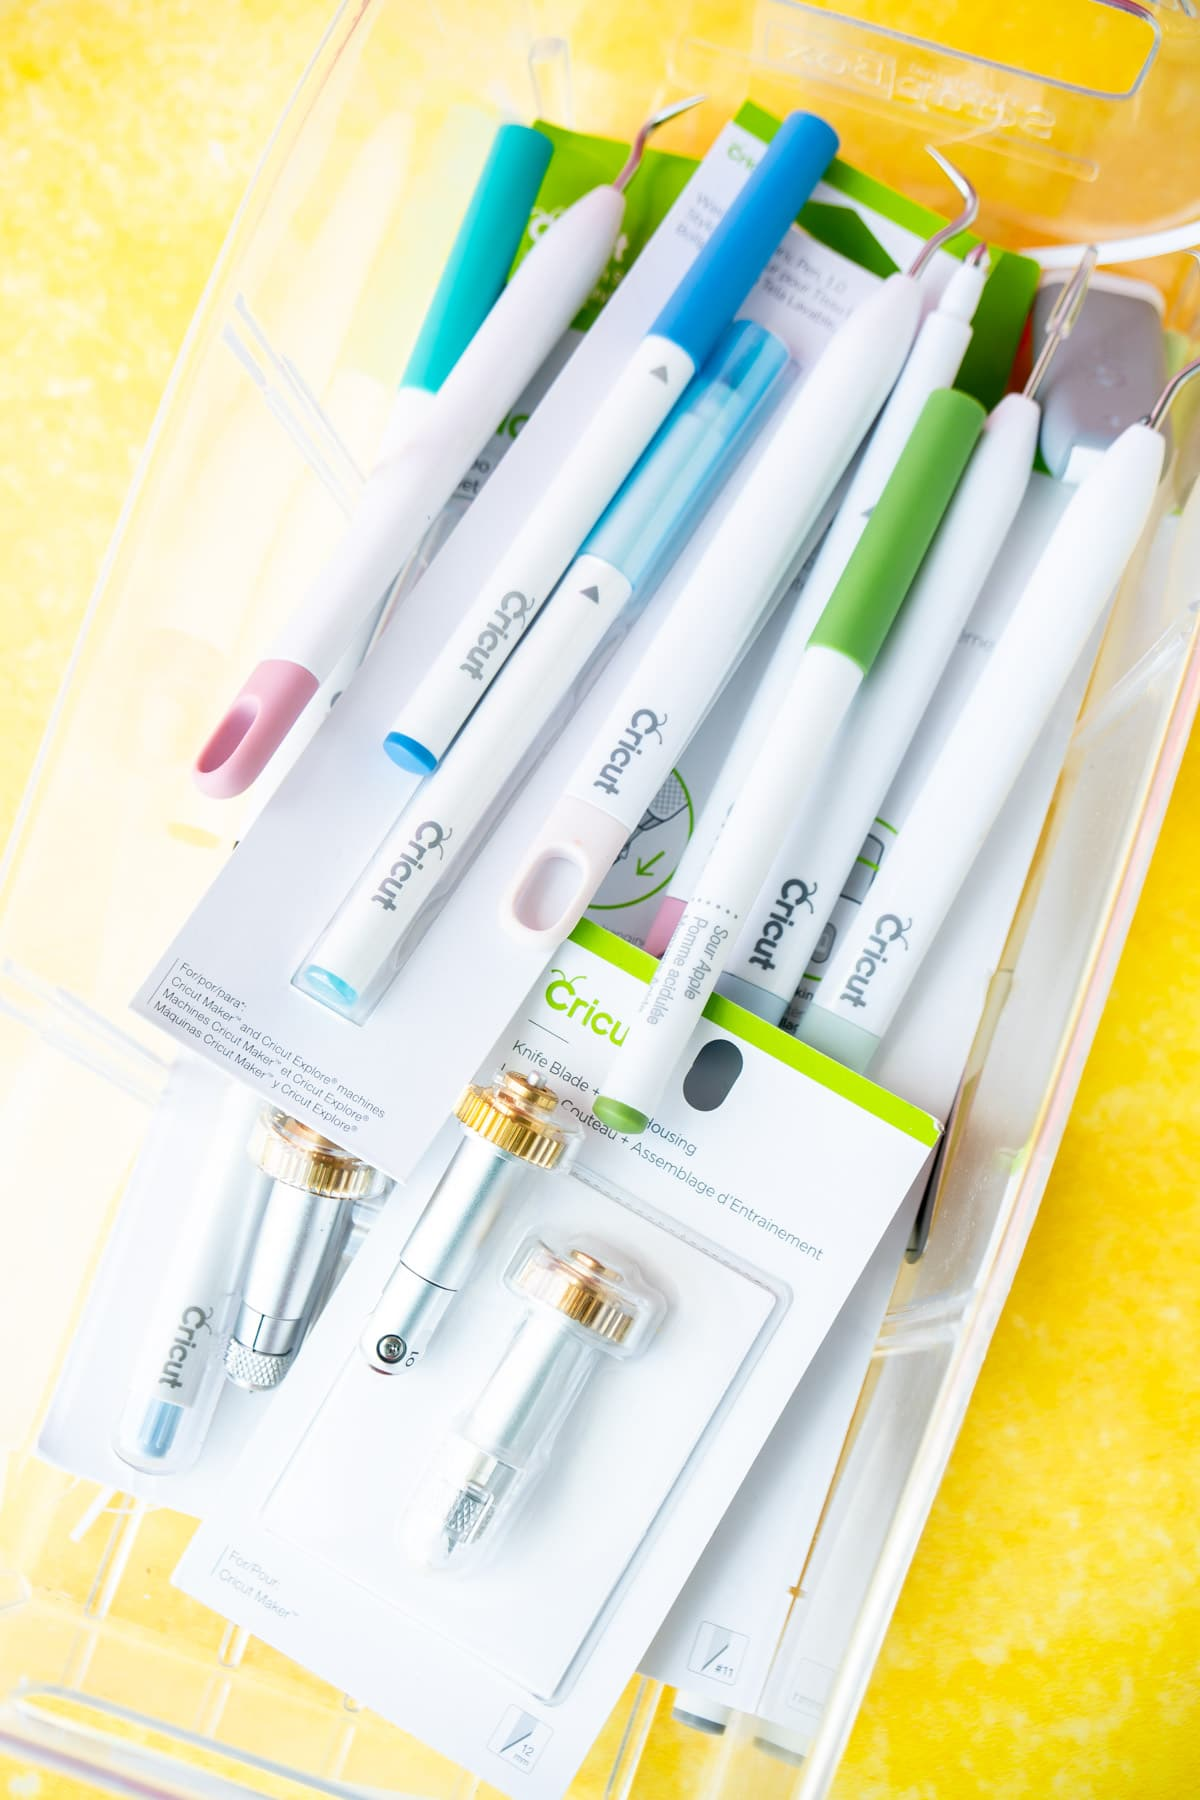 A variety of Cricut Maker tools in a clear bucket on a yellow background